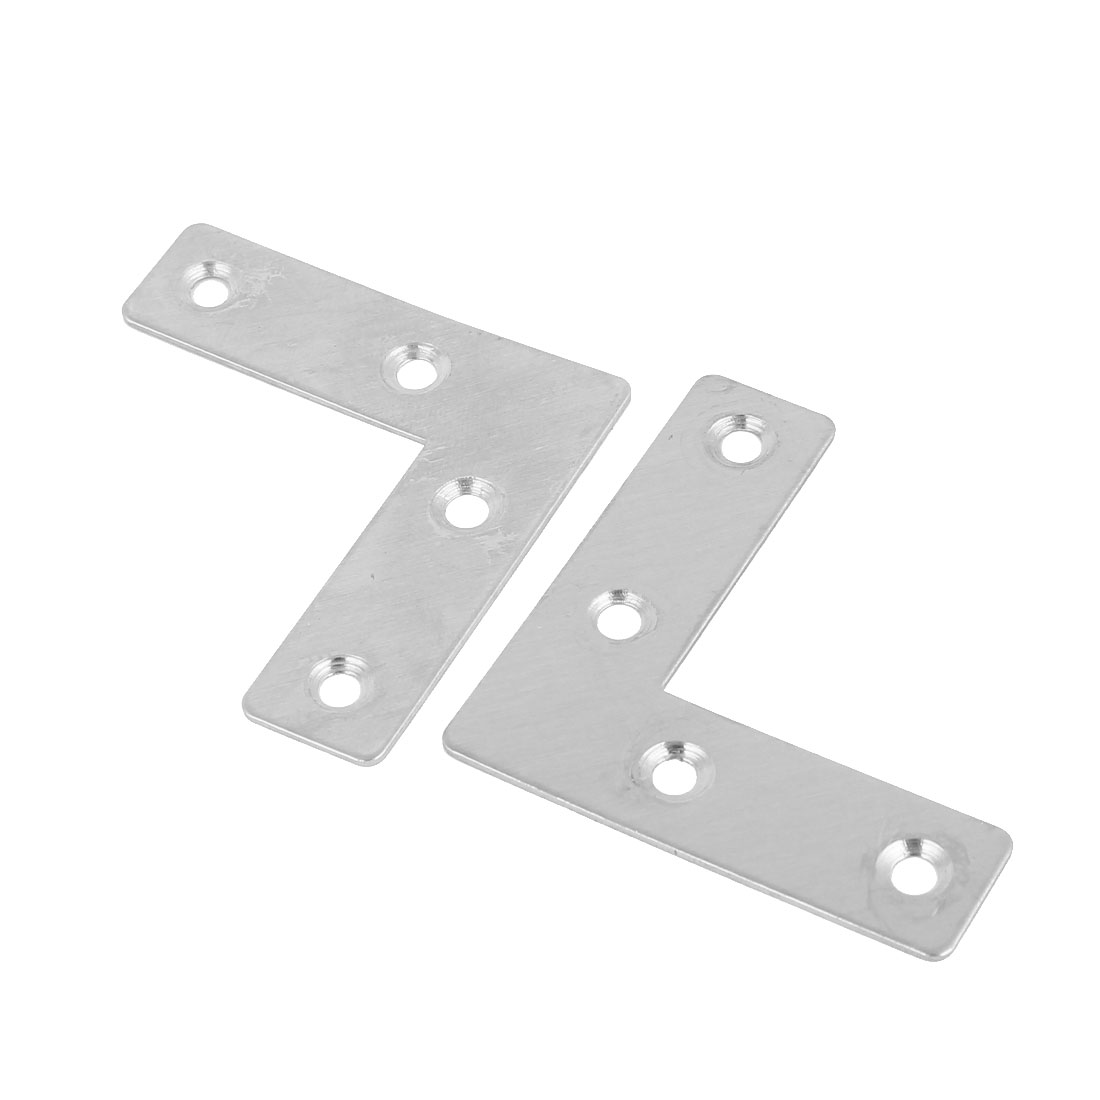 51mmx51mm 90 Degree L Shaped Stainless Steel Angle Bracket Corner Brace 2 Pcs